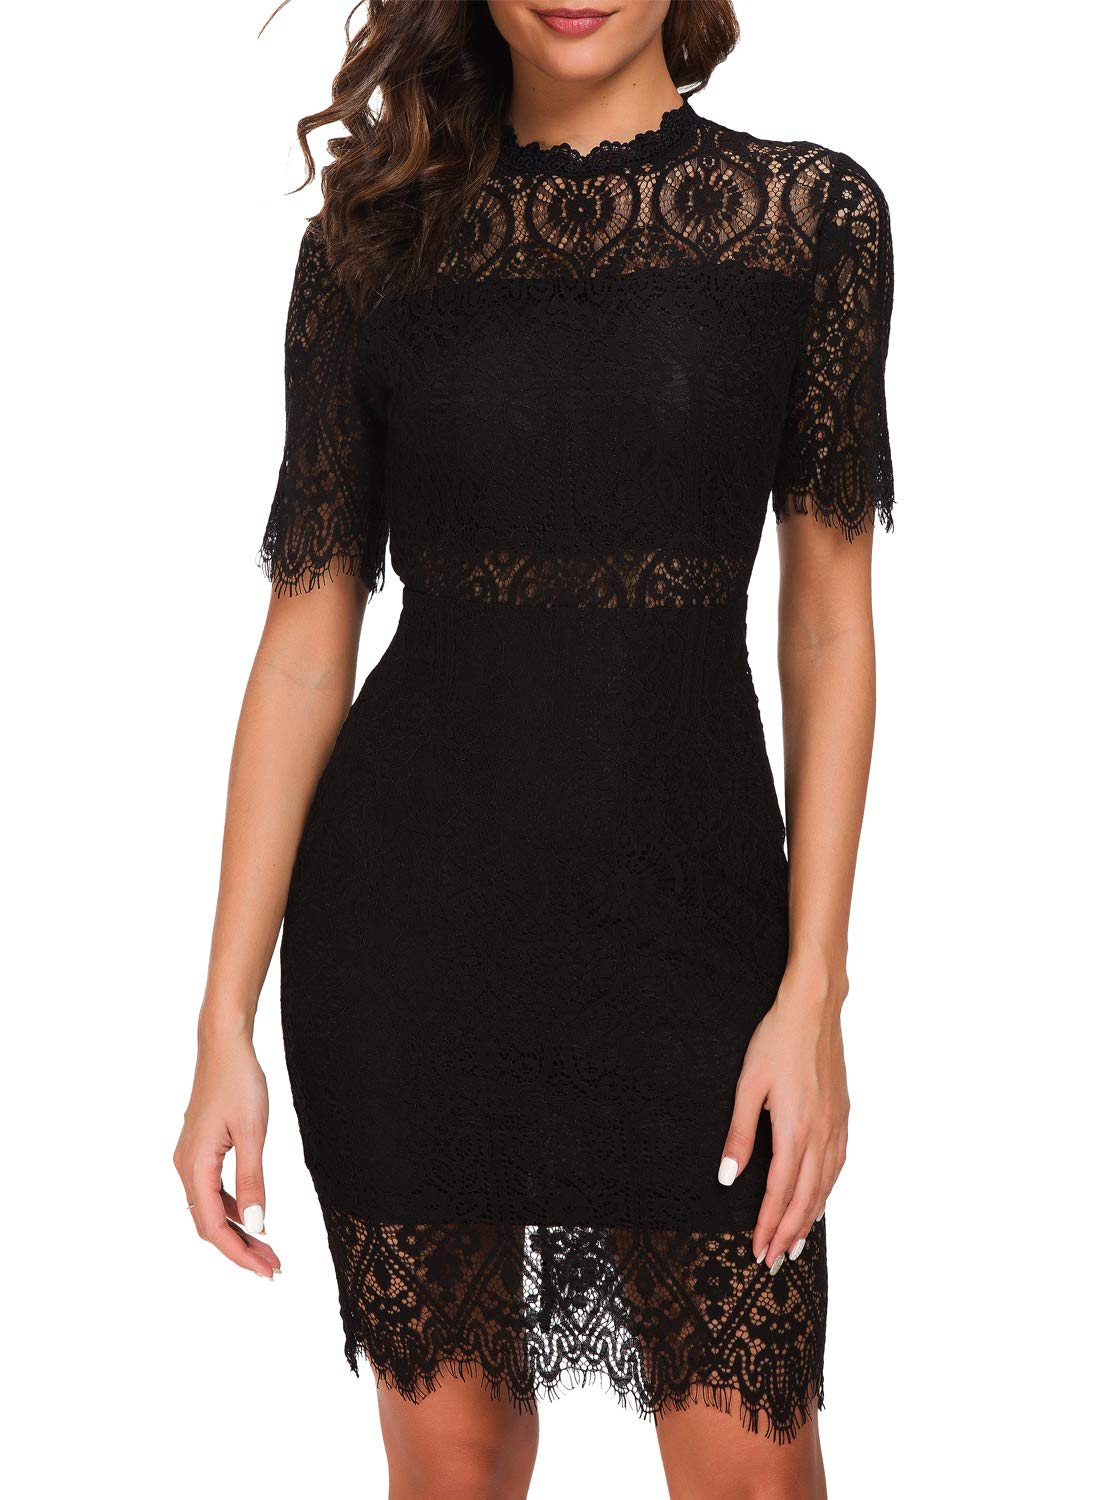 Zalalus-Womens-Elegant-High-Neck-Short-Sleeves-Lace-Cocktail-Party-Dress